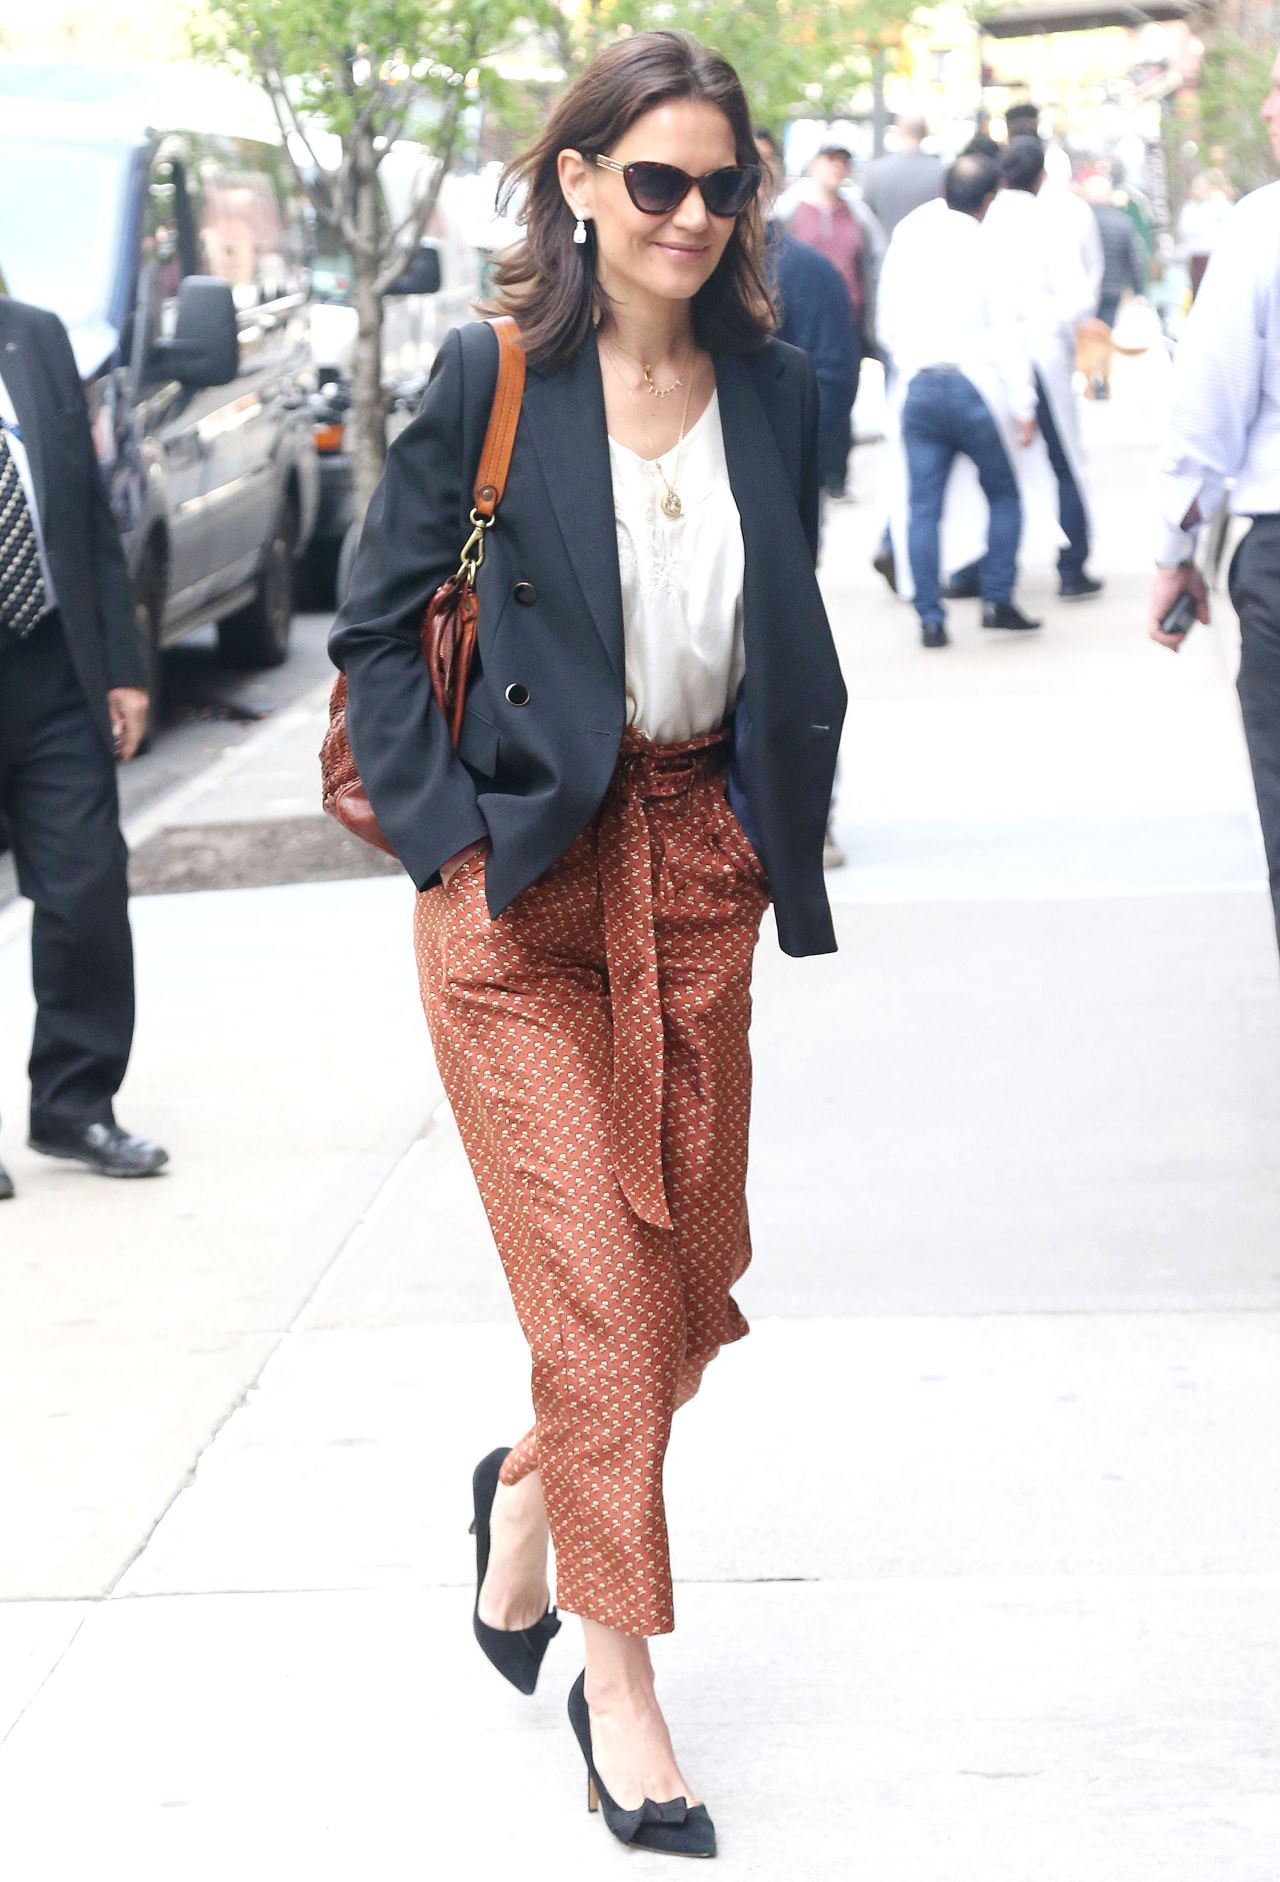 Katie Holmes Arriving At The Tribeca Film Festival